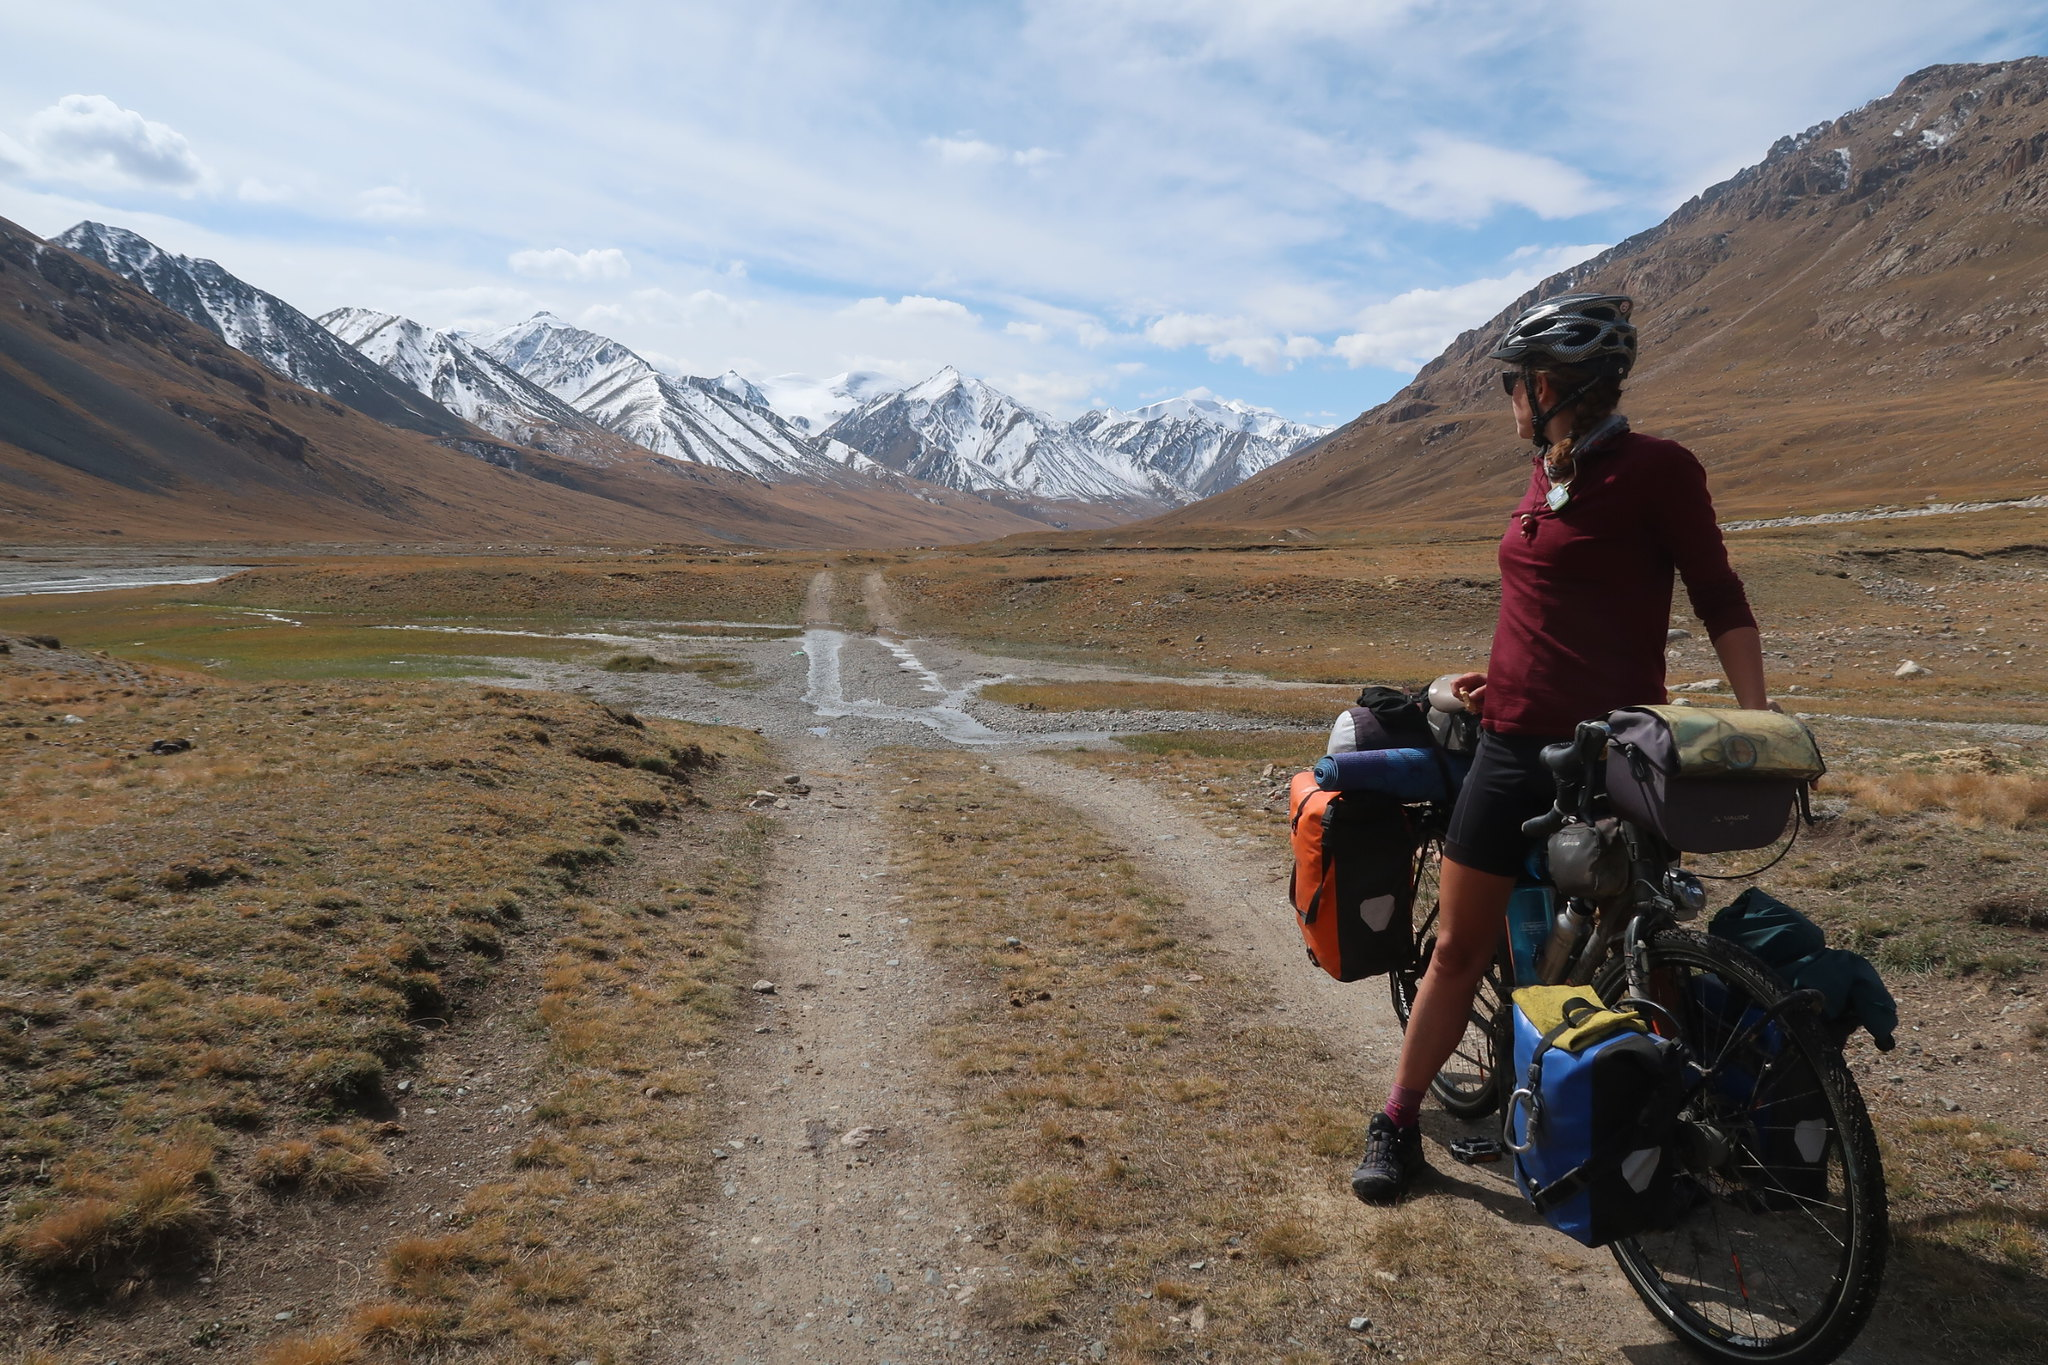 Kyrgyzstan – bumpy but beautiful